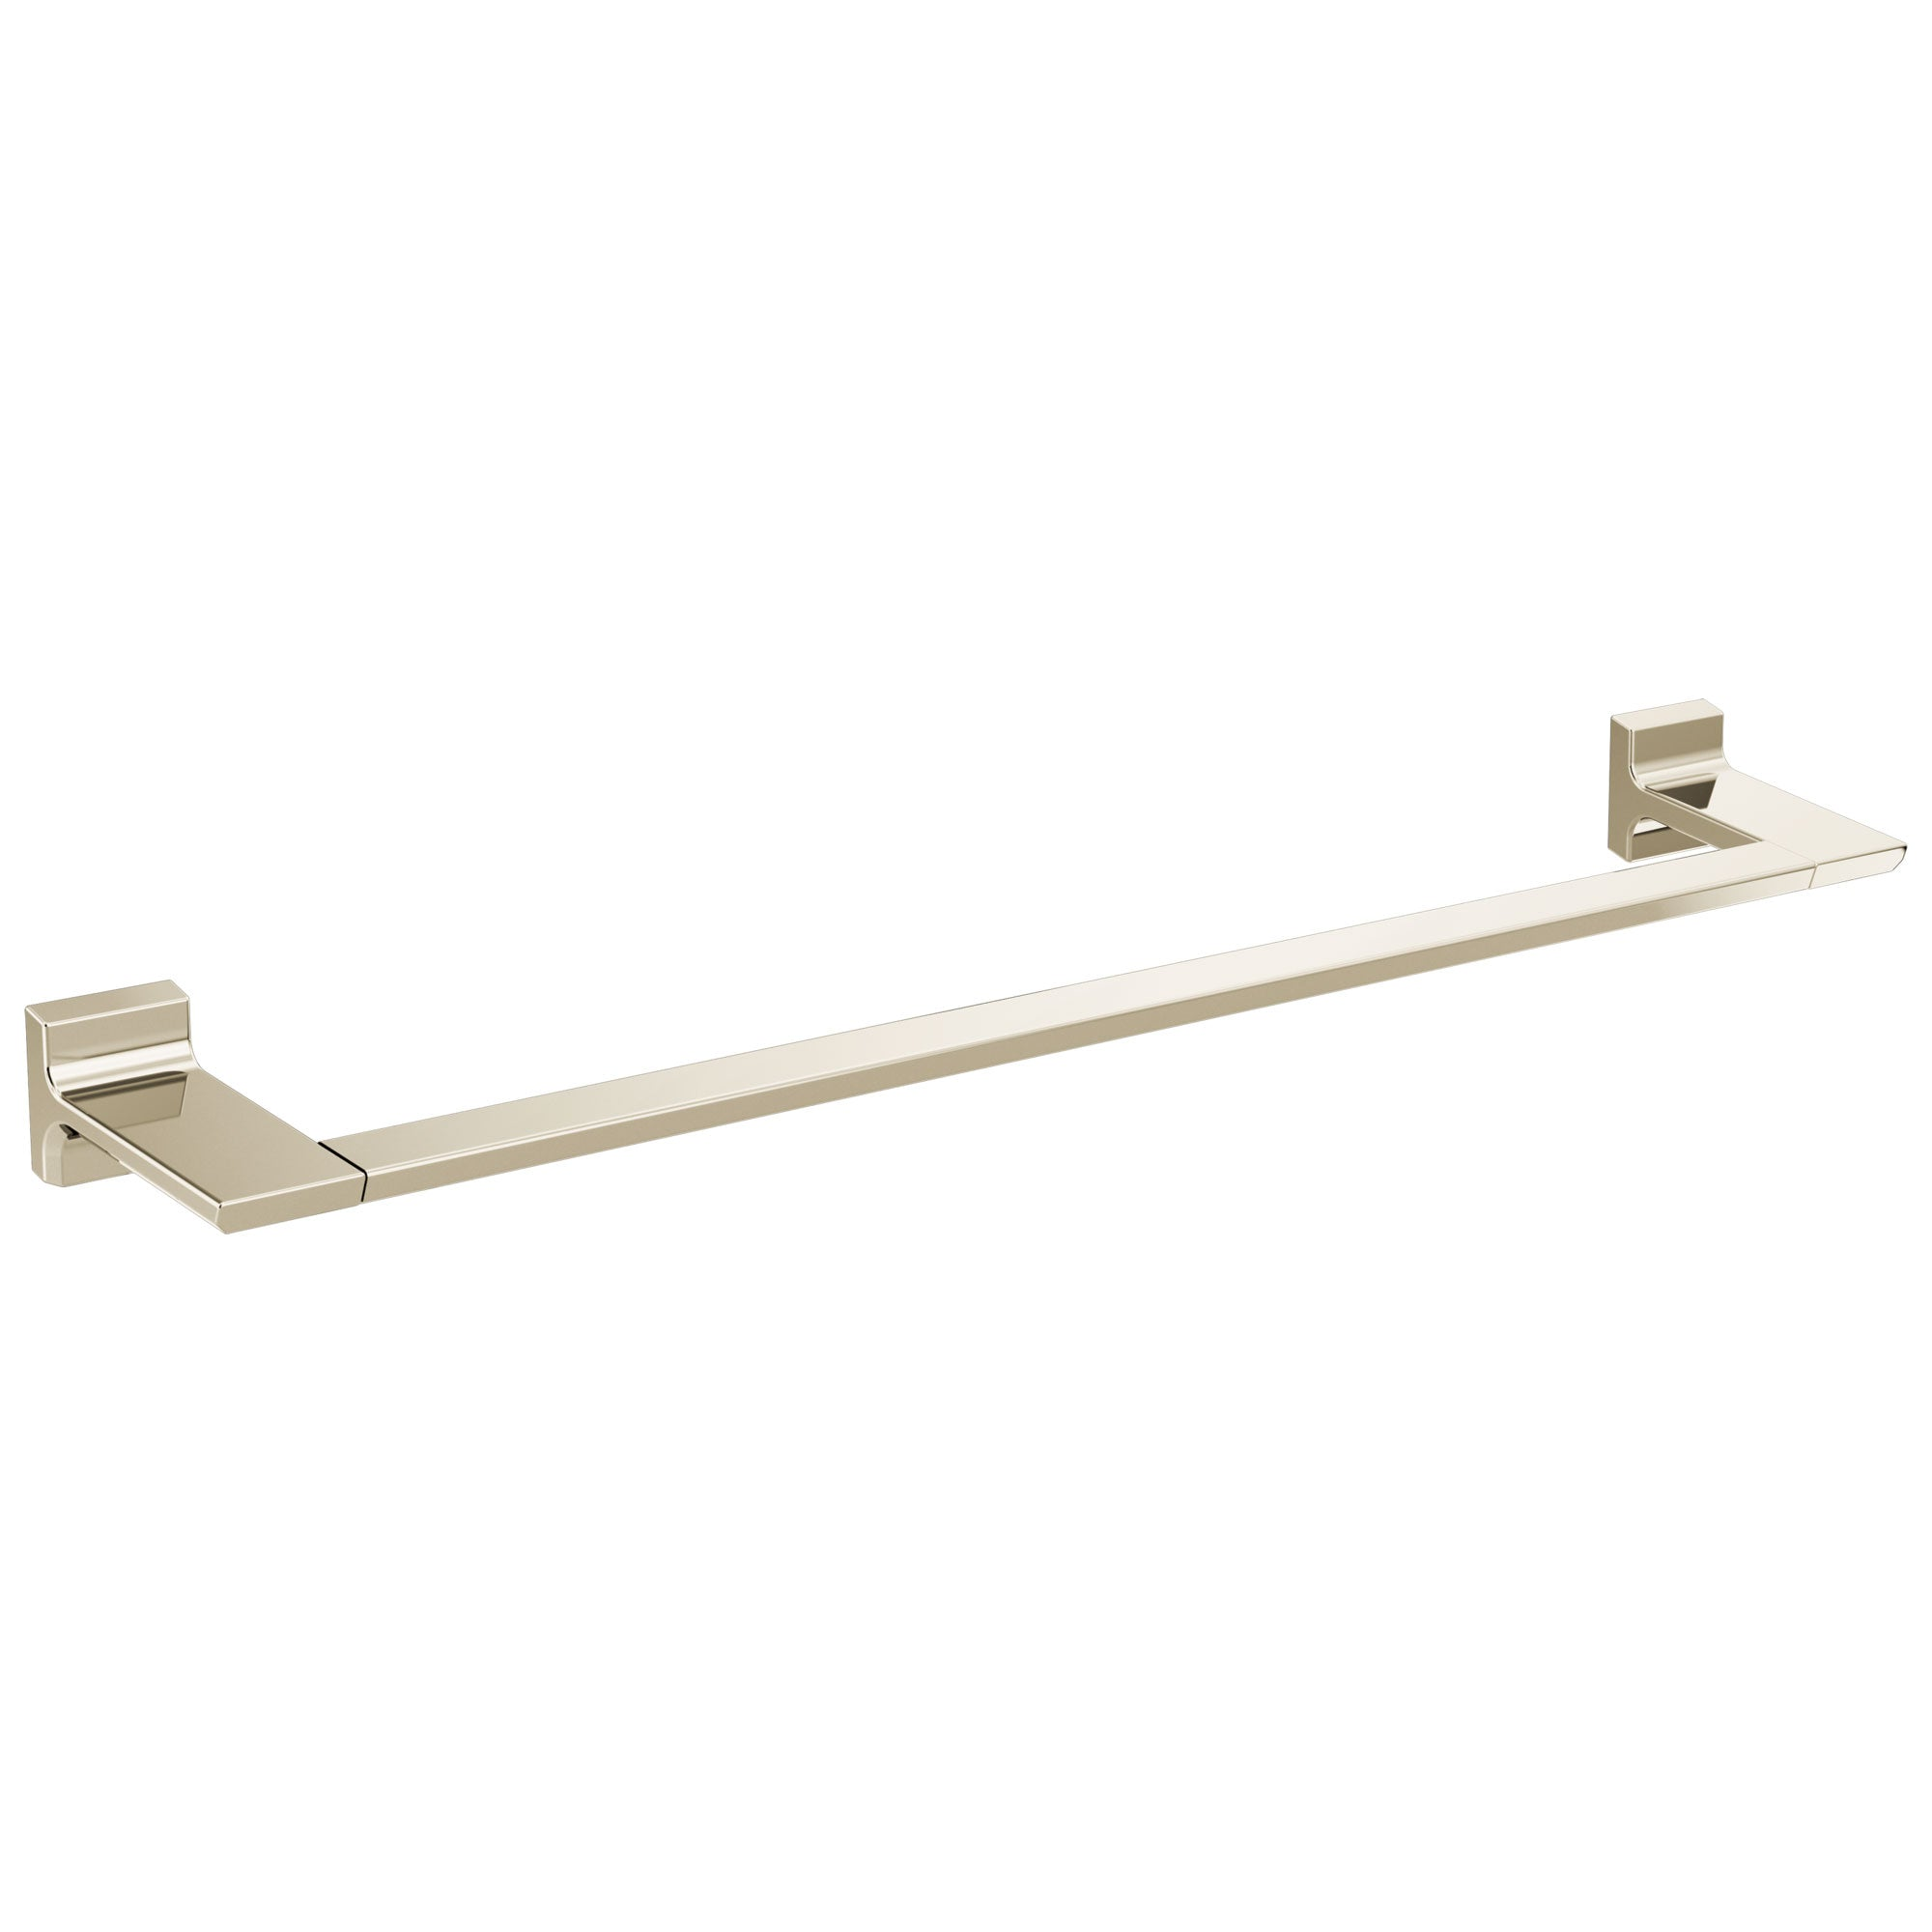 "Delta Pivotal Polished Nickel Finish 24"" Single Towel Bar D79924PN"